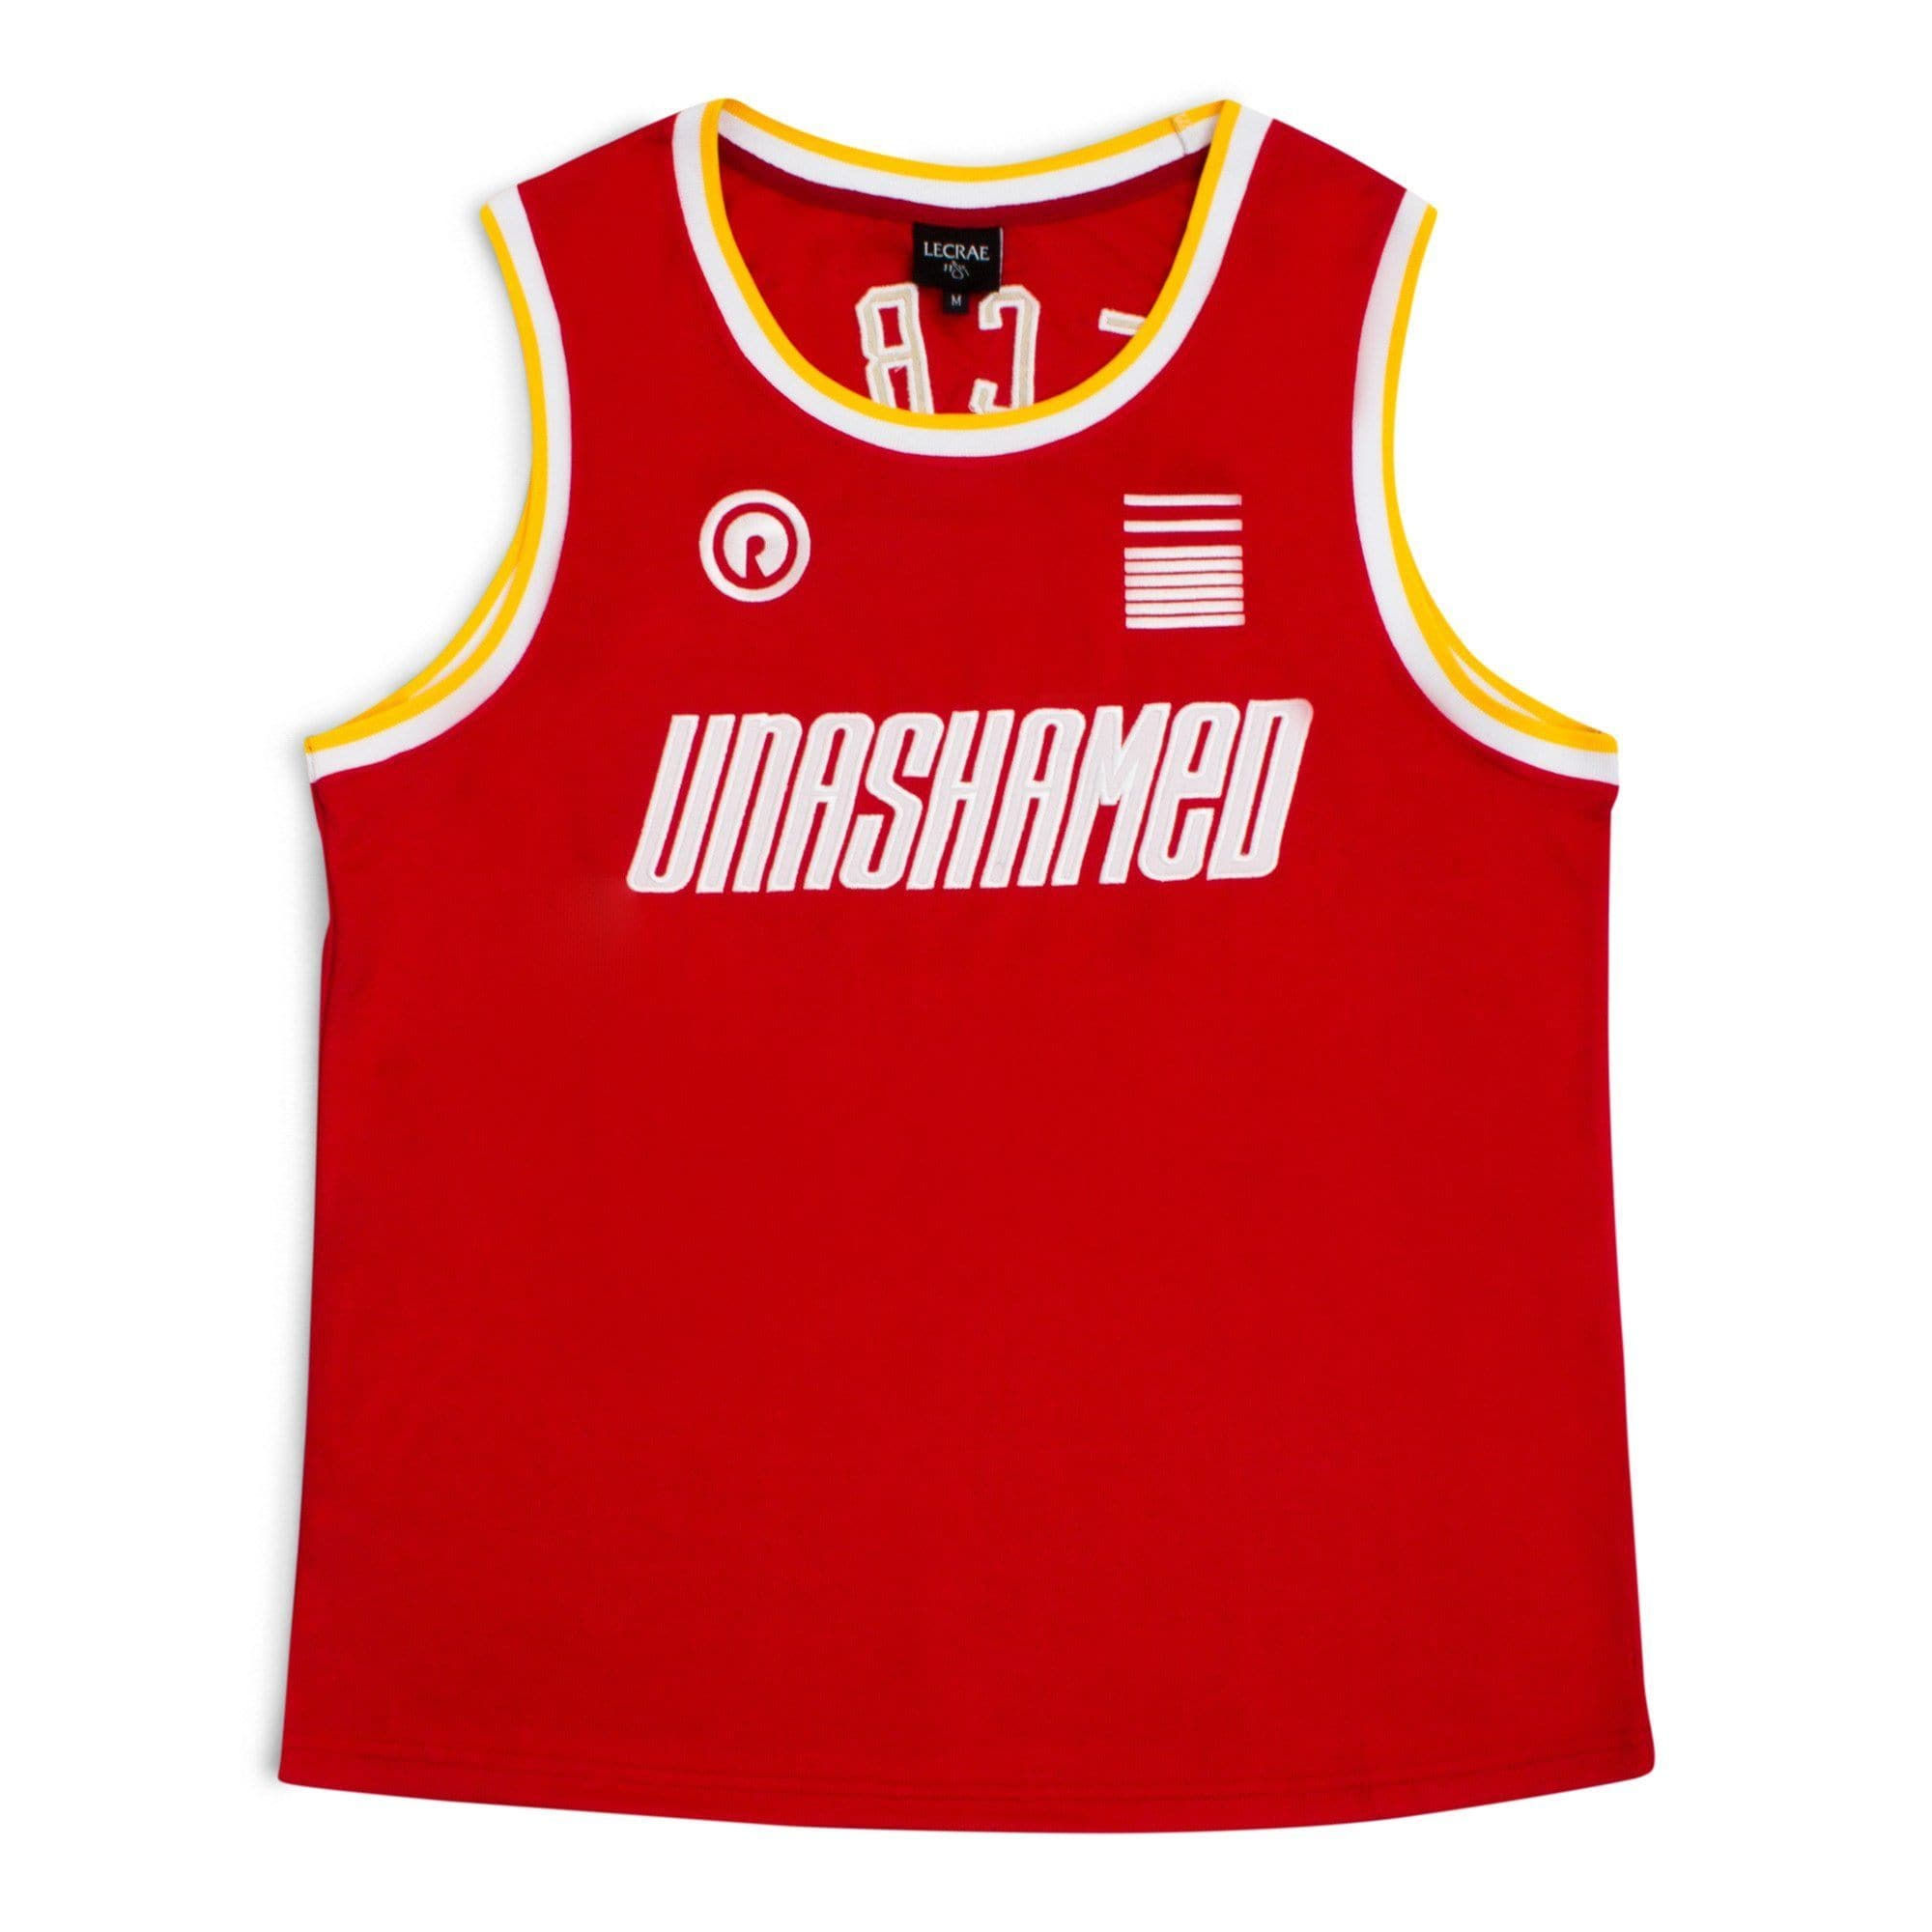 '116 Unashamed' Basketball Jersey